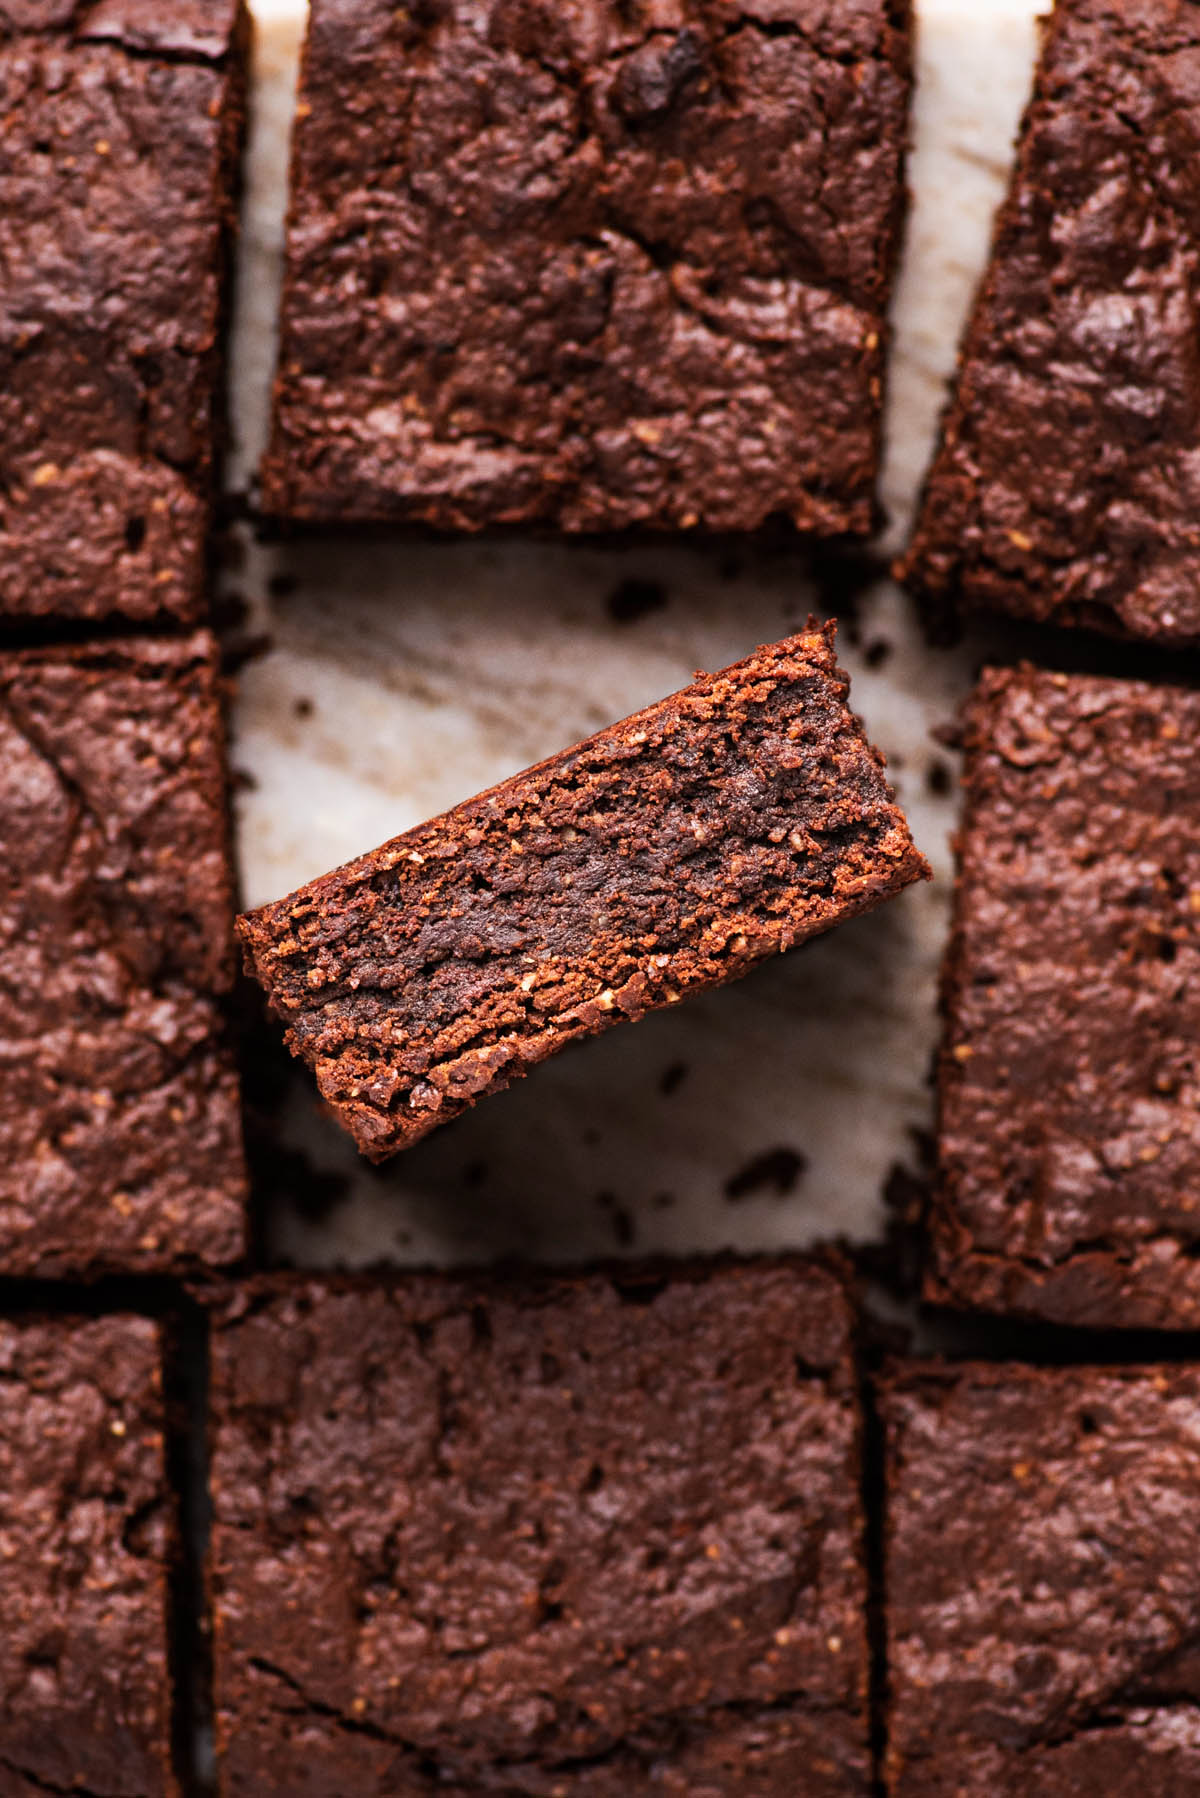 Brownies cut into squares, with one facing up to see interior texture.